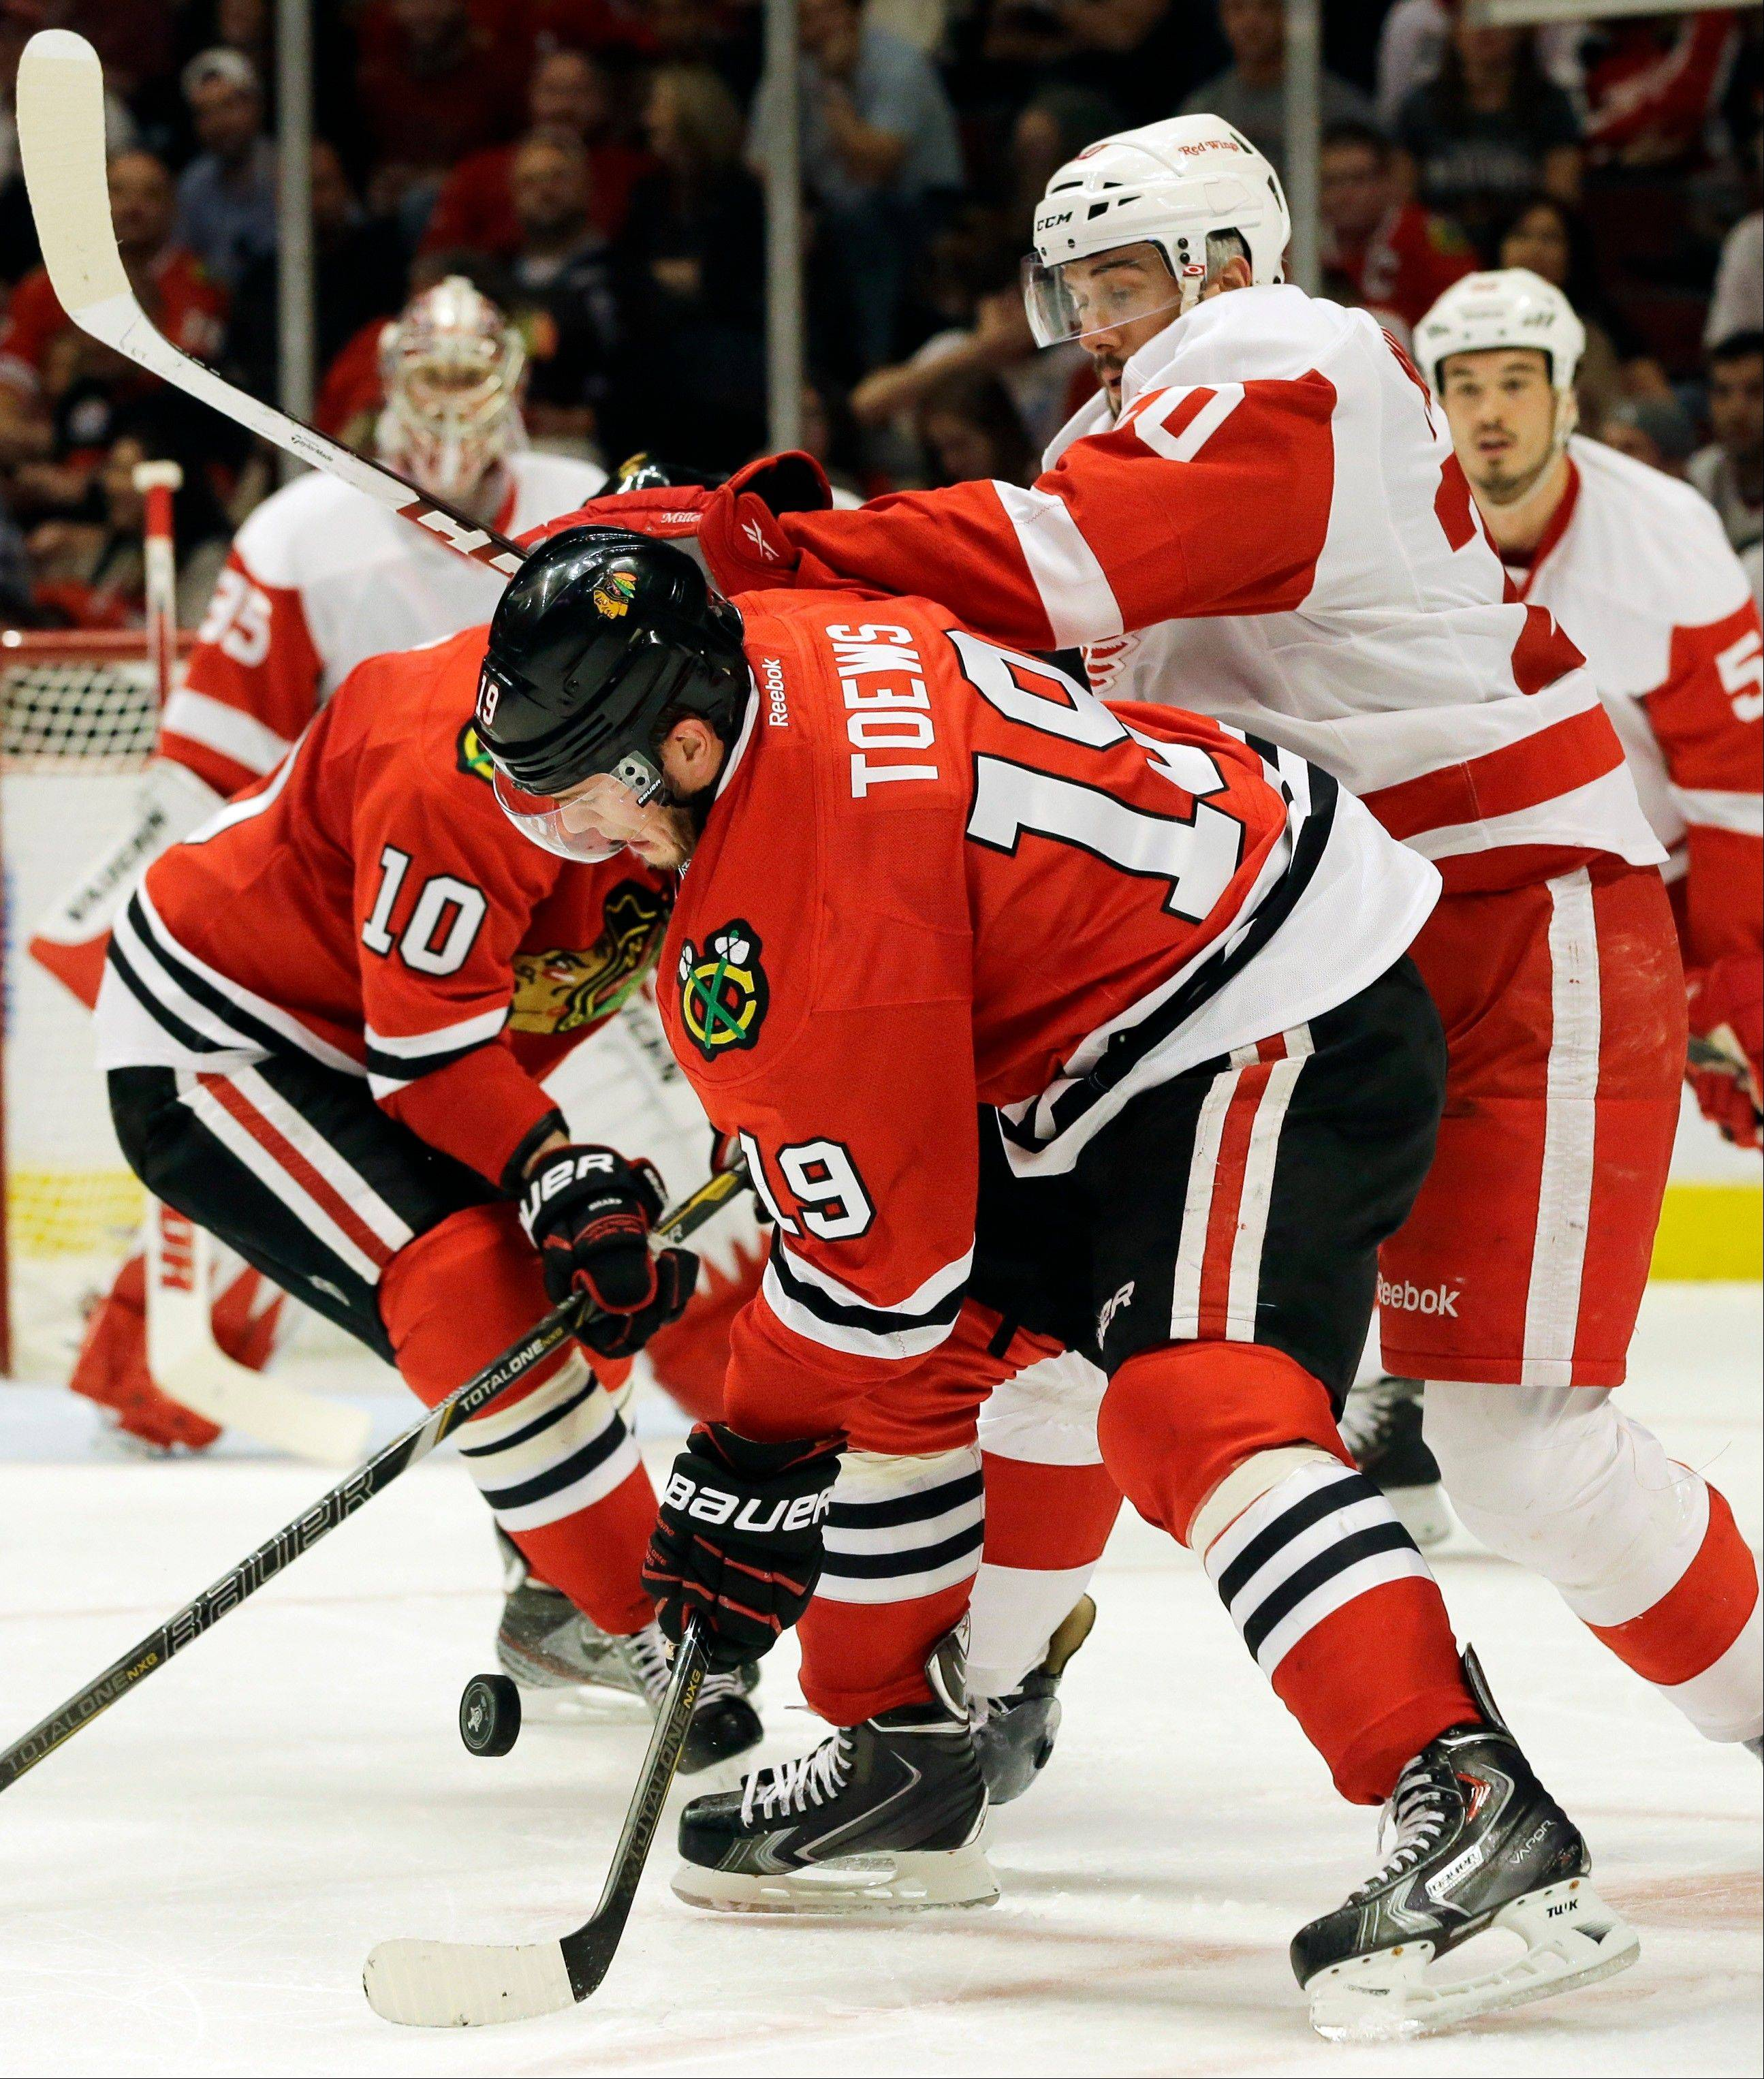 Jonathan Toews controls the puck against Detroit Red Wings' Cory Emmerton during the second period of Game 2.